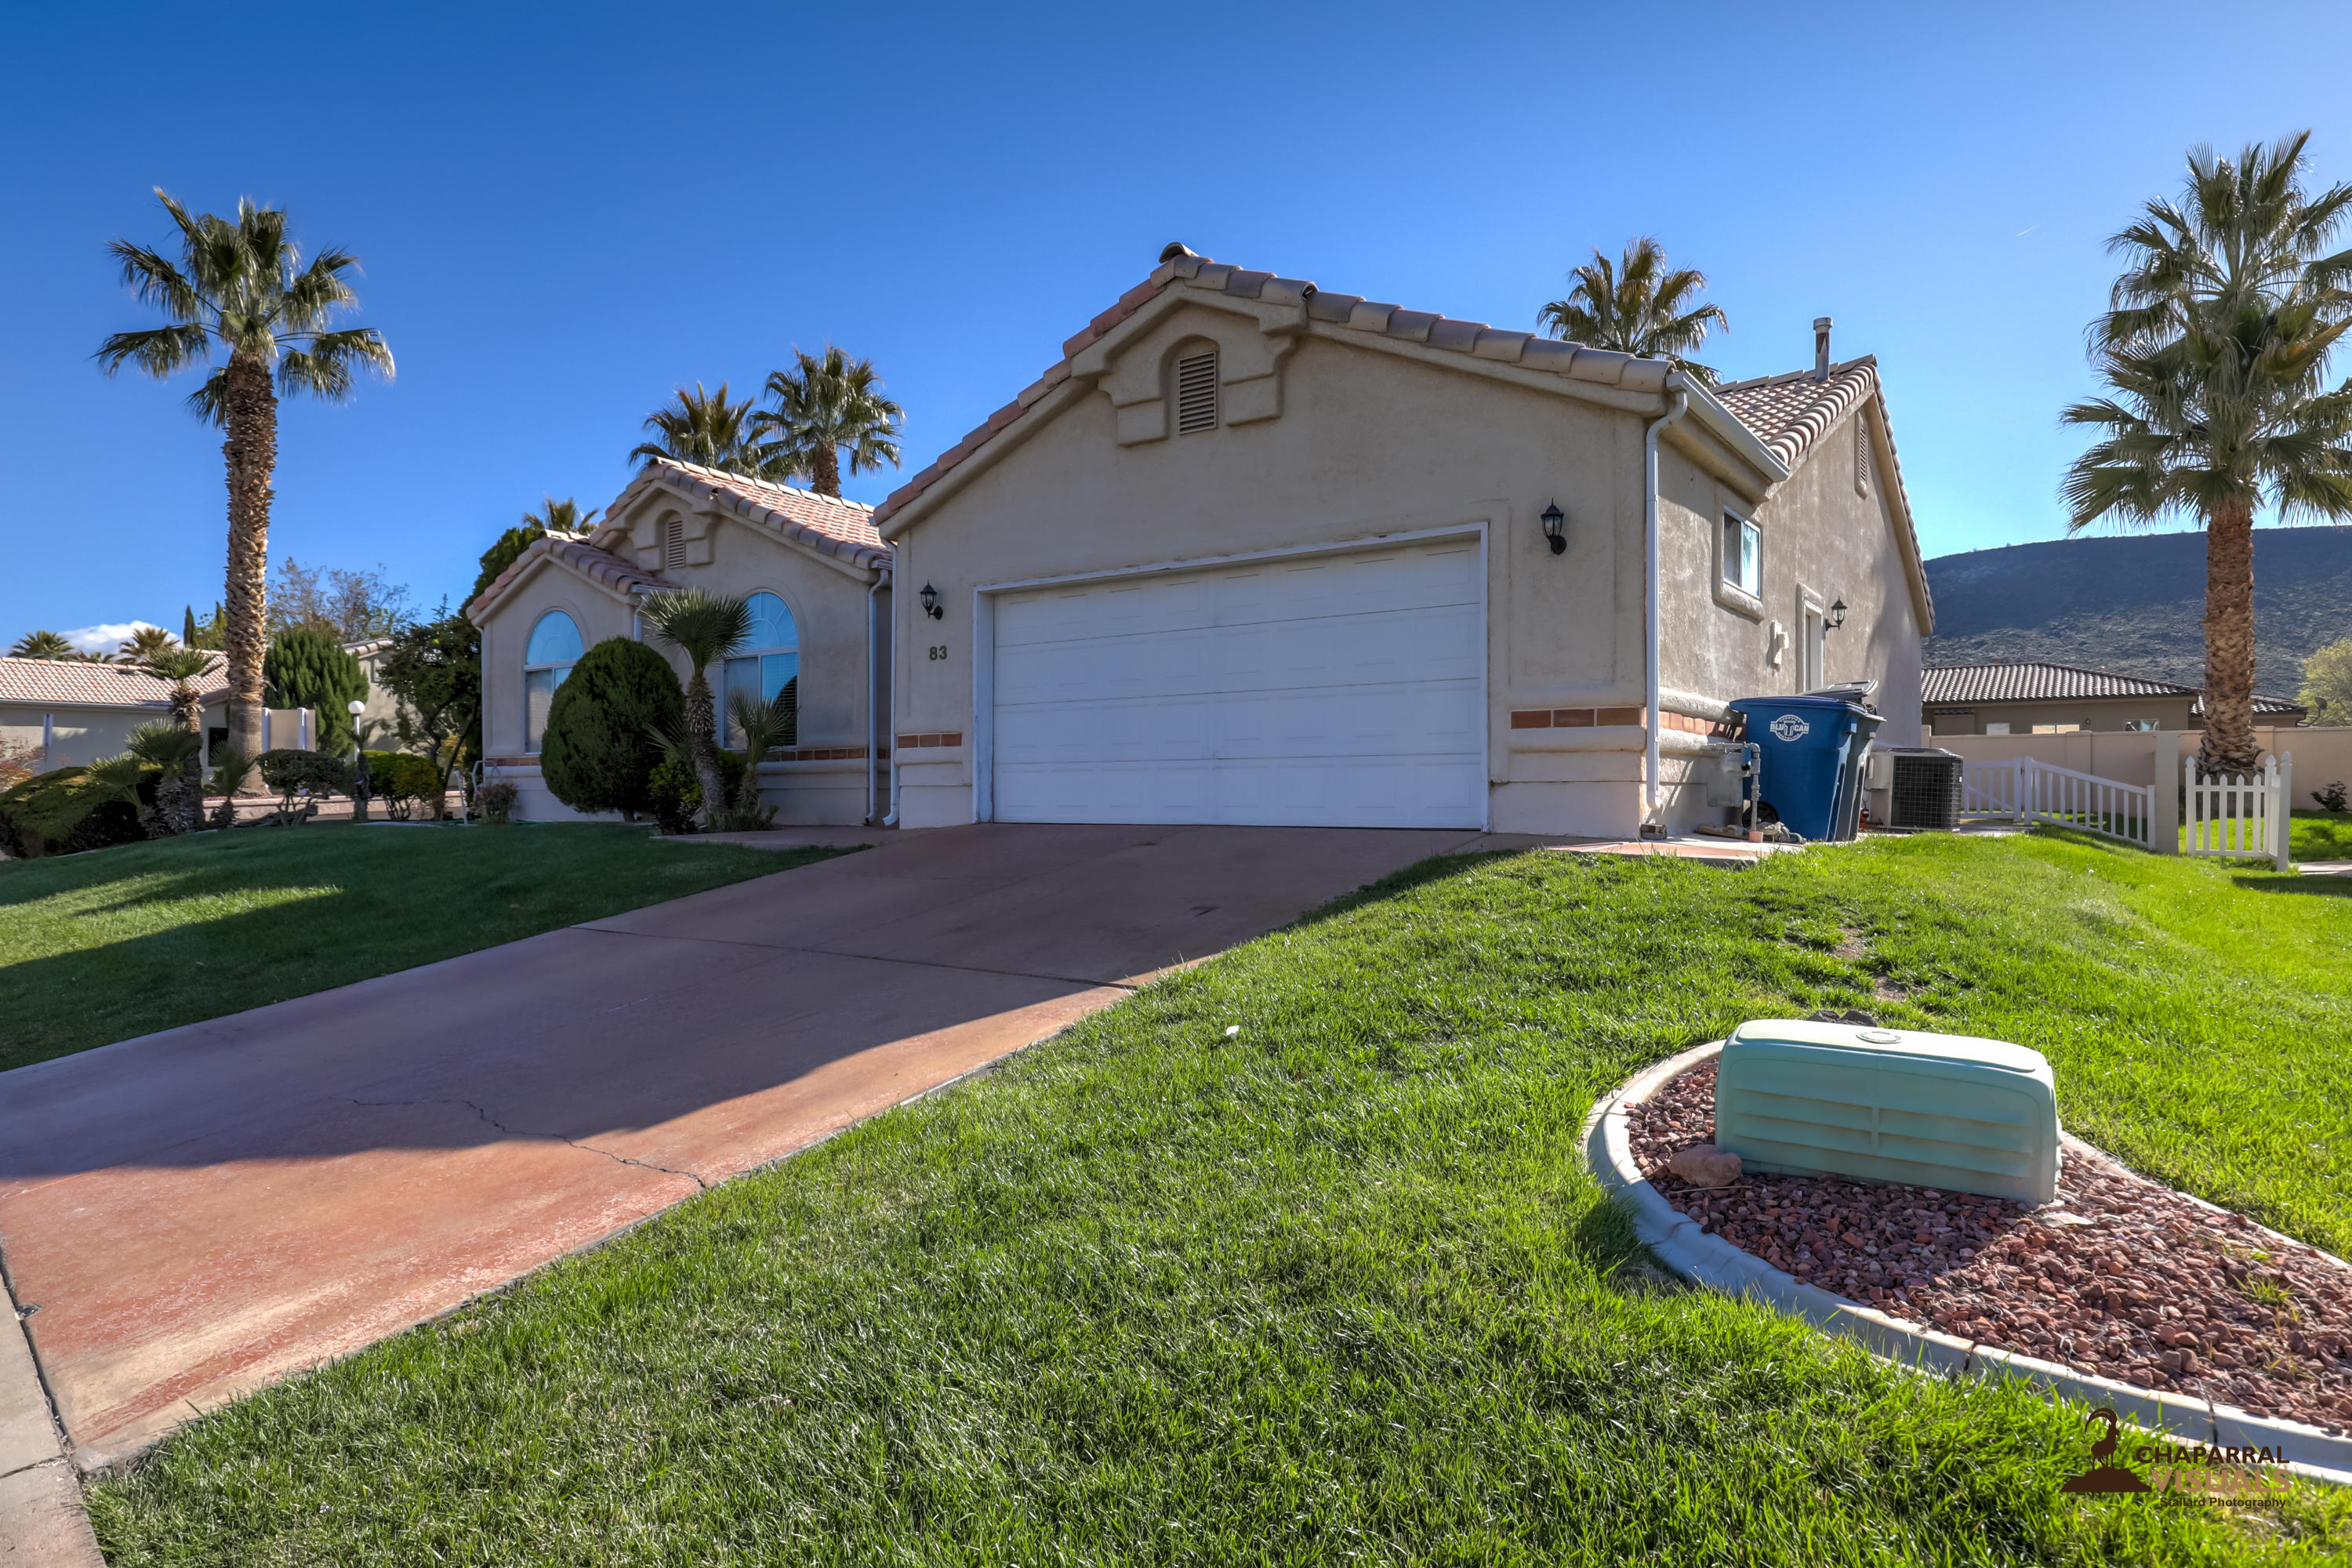 89337 225 Valley View #83 DR St George UT